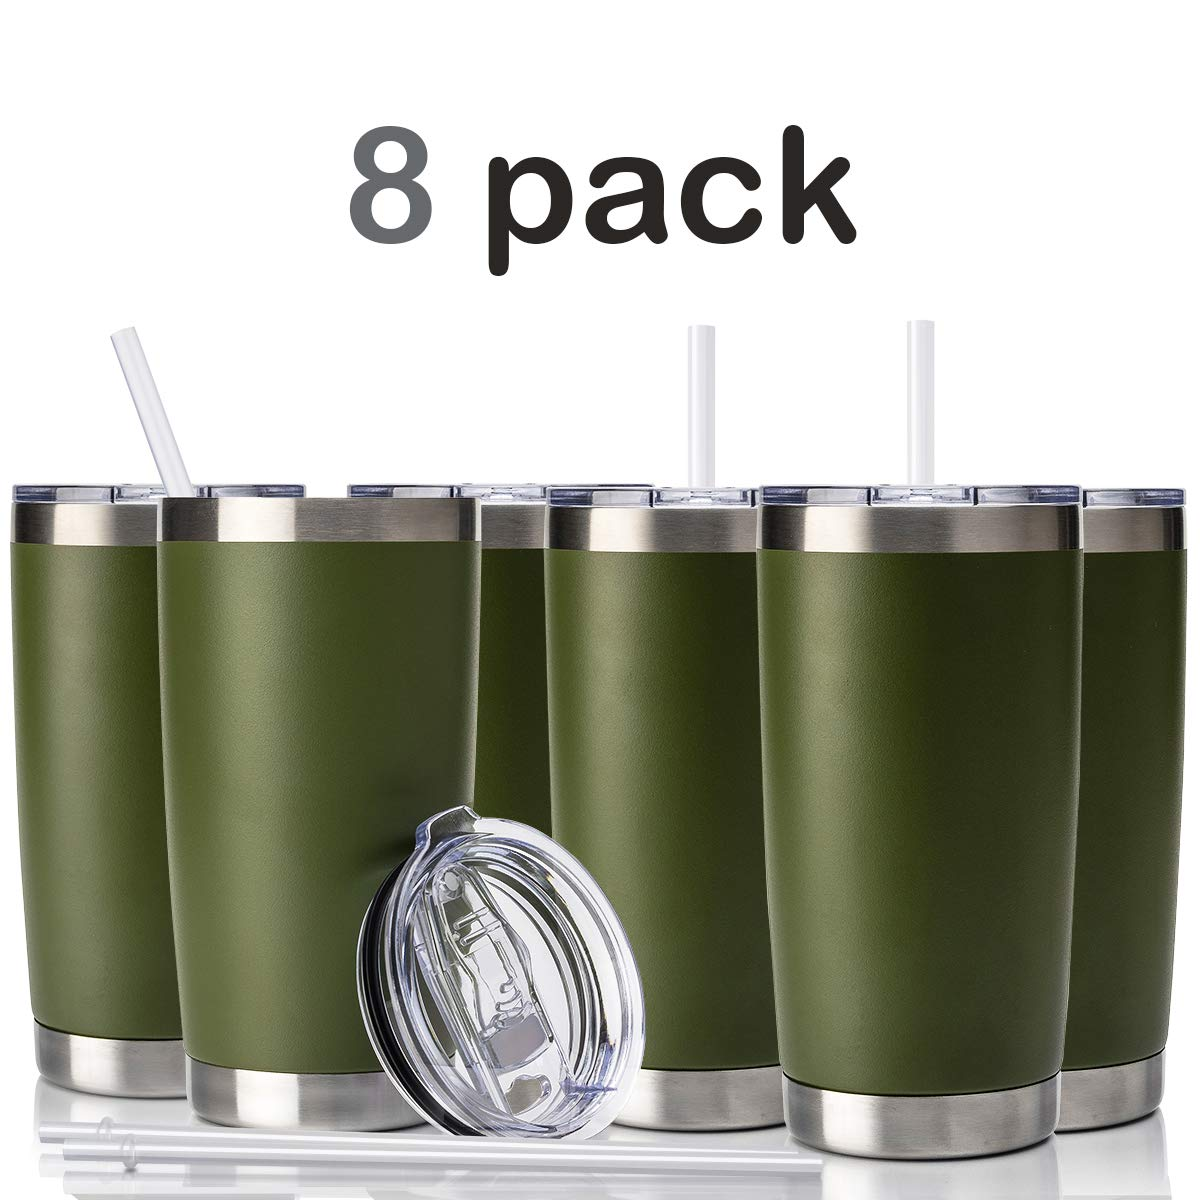 Tumbler with Lid and Straw, Civago 20 oz Stainless Steel Coffee Tumbler Travel Mug Double Wall Vacuum Insulated Coffee Cup Spill Proof, Travel Friendly (Army Green, 8 Pack)